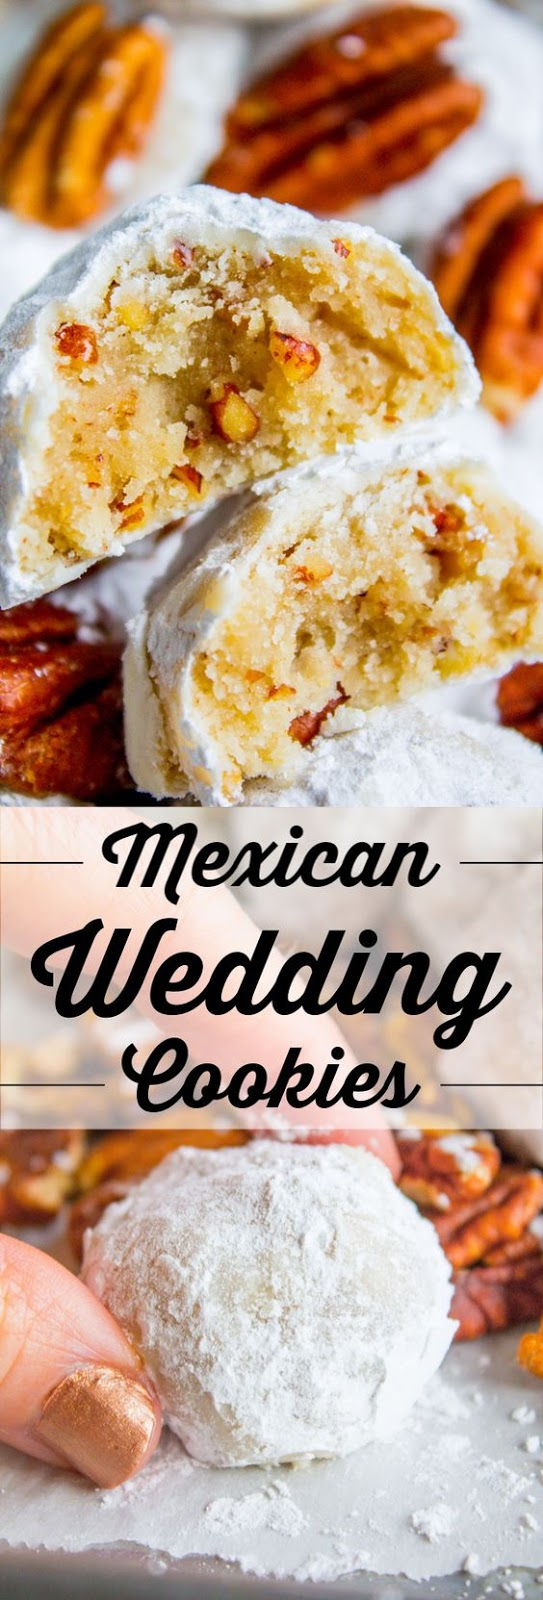 Mexican Wedding Cookies (Russian Tea Cakes)